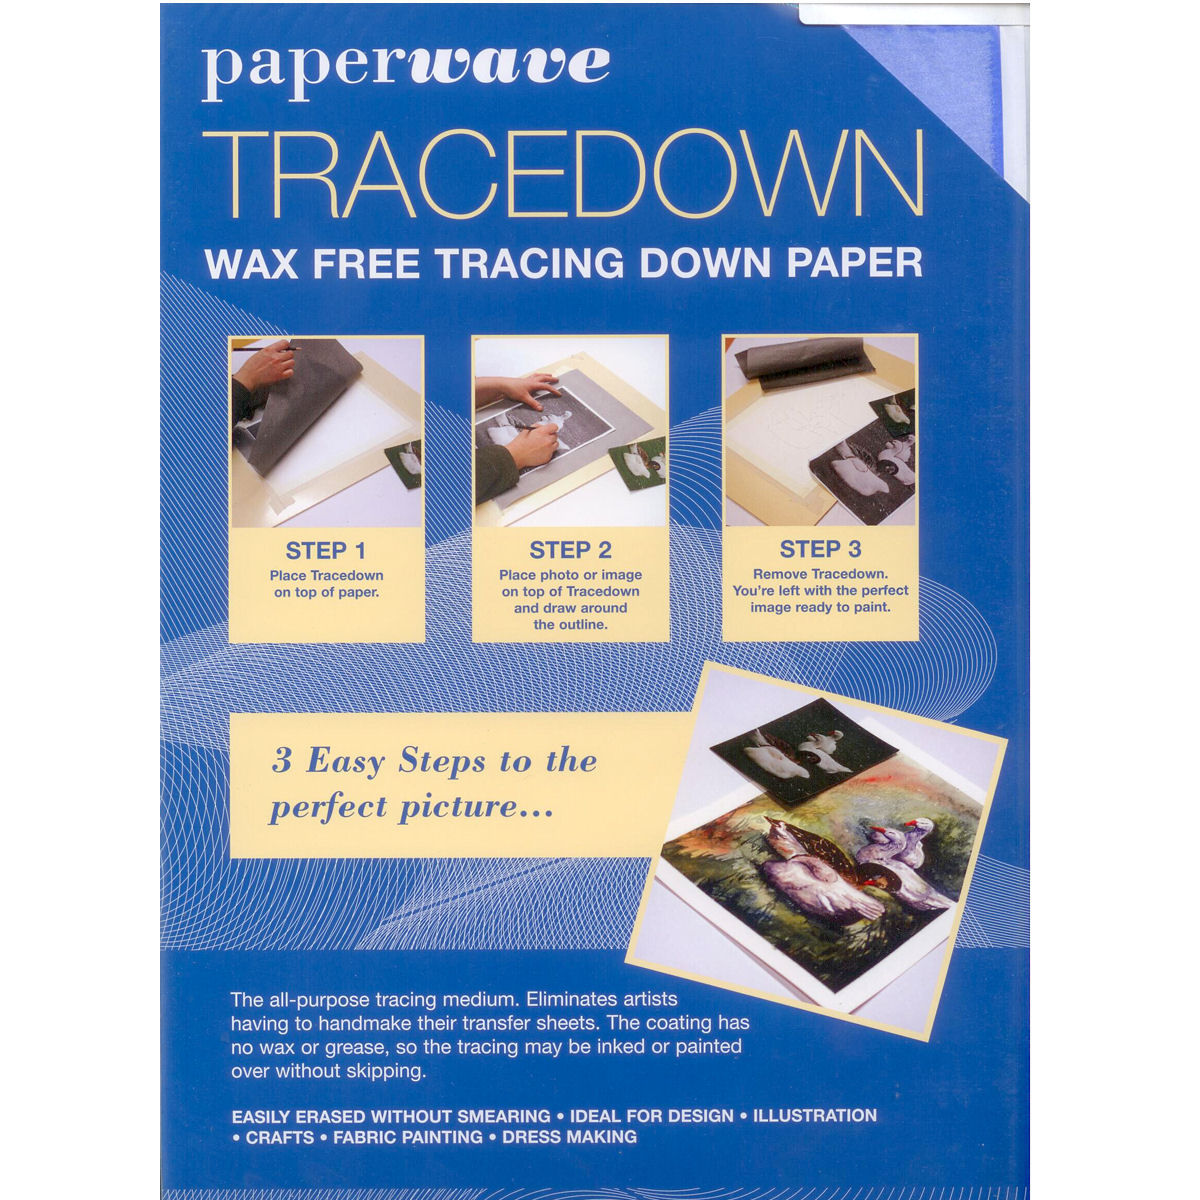 where to buy wax paper uk A great deal for fire starters or anyone wanting to filter use recycled wax for candles these are mixed lots of all types of paraffin waxes some lots may be scented.